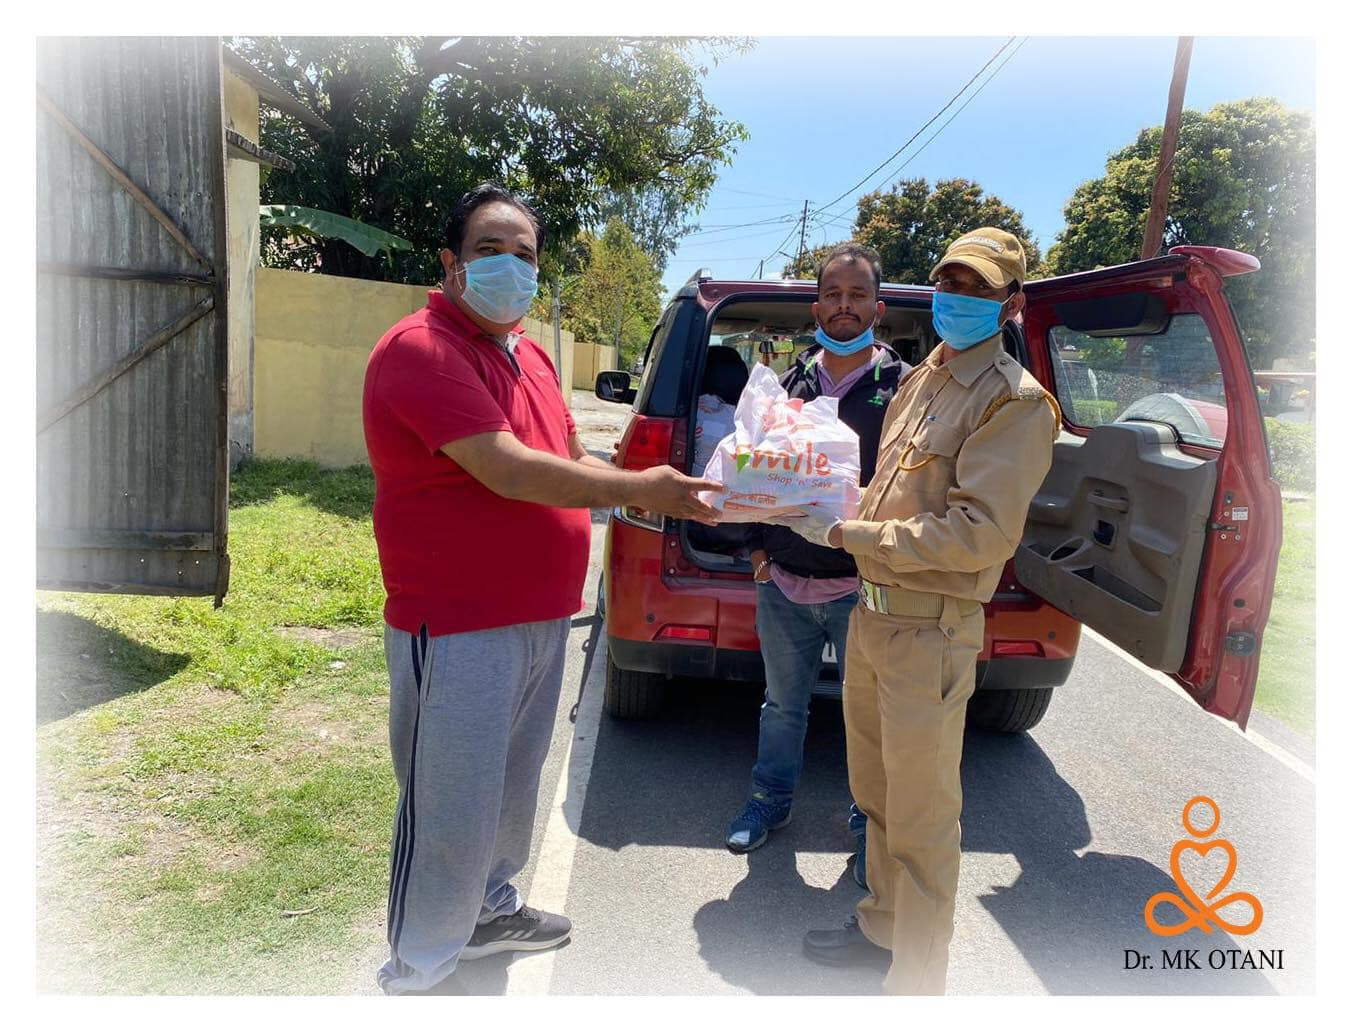 Dr. MK Otani, WAB Advisor and team donated food to the affected people in COVID 19 pandemic